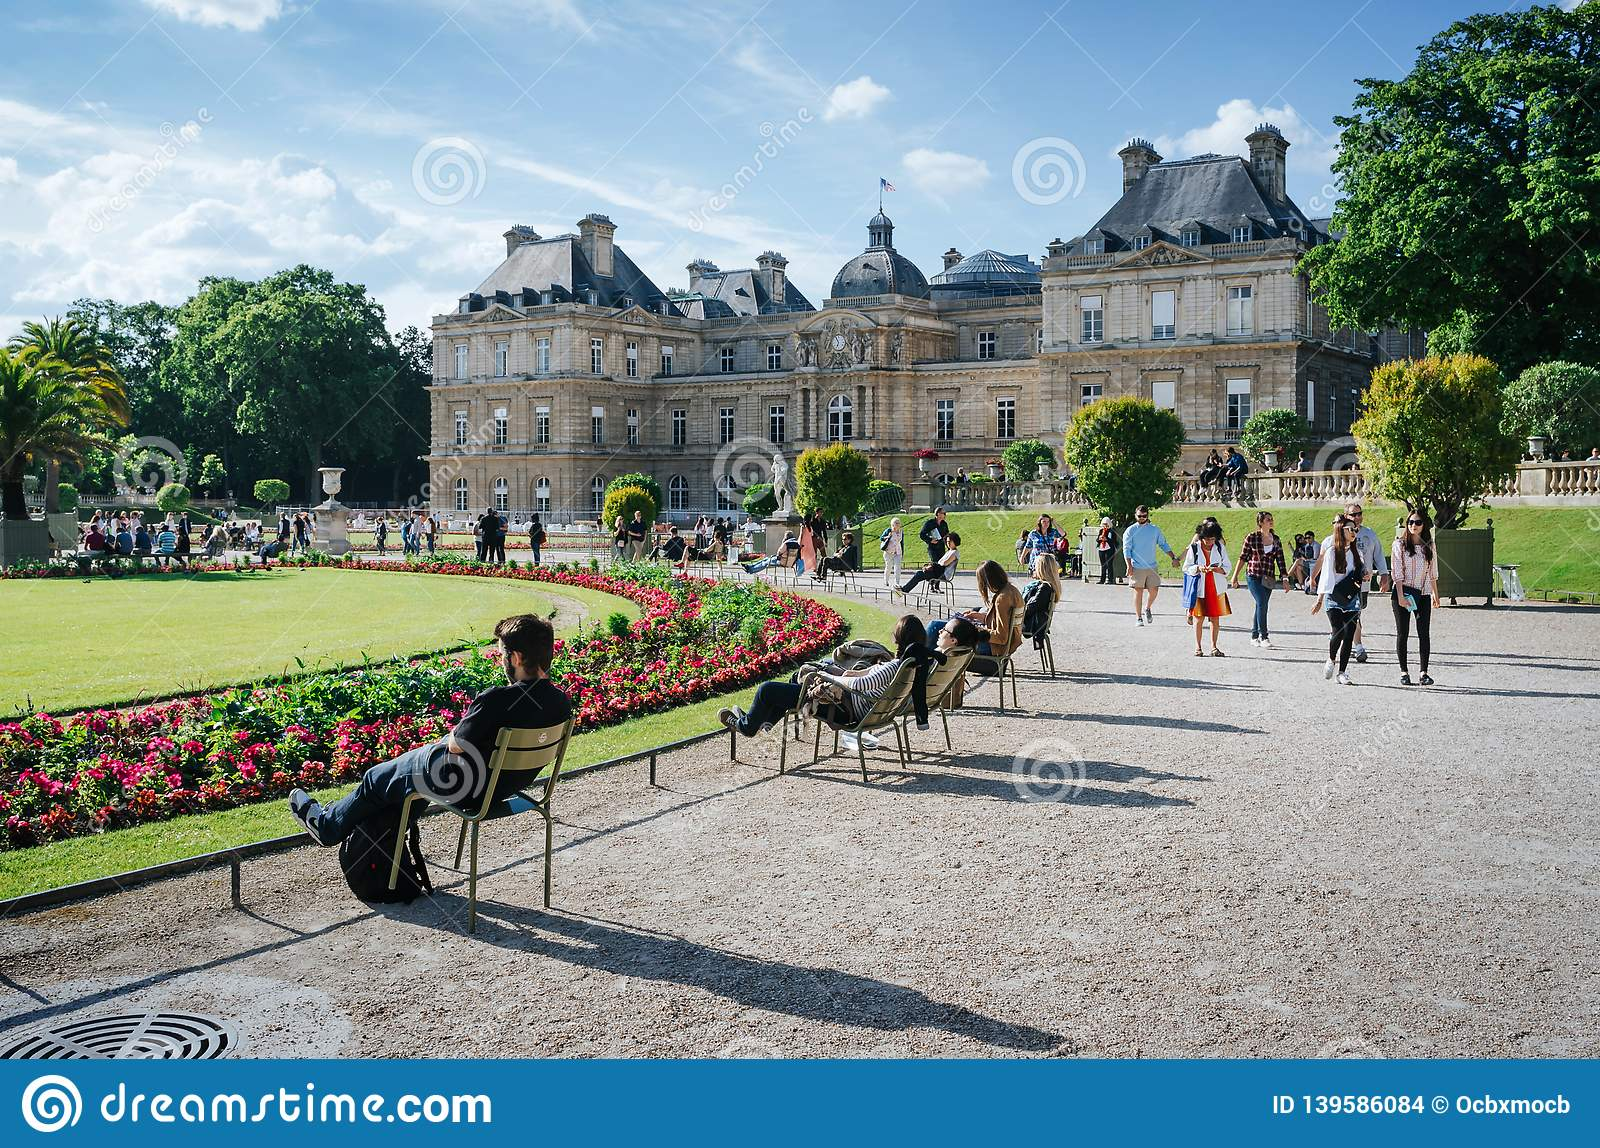 PARIS, FRANCE - JUNE 26, 2016: People relax and hang out in pucturesque park in front of Palais du Luxembourg or Luxemburg Palace